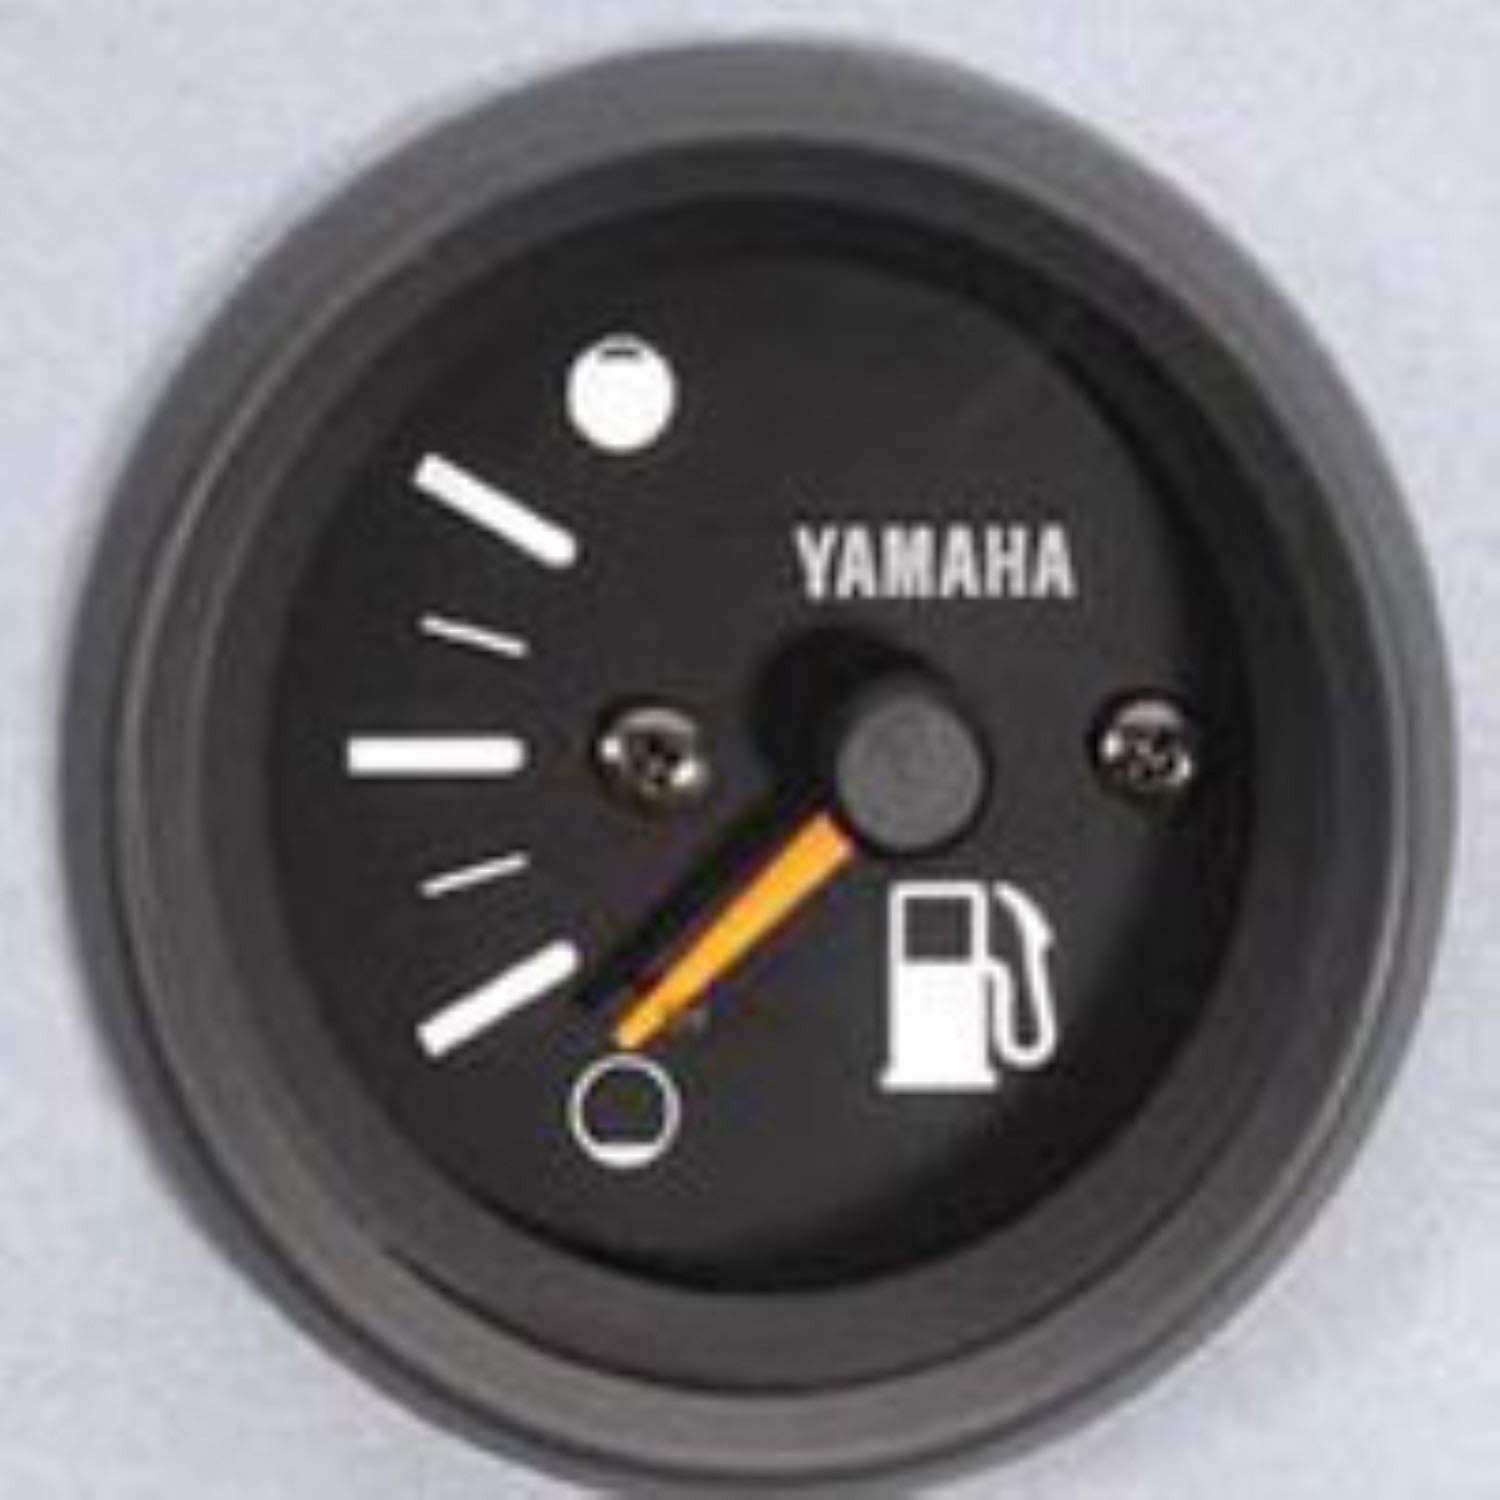 Yamaha Outboard New OEM 6Y7-85750-10-00 Pro Series II Fuel Gas Gauge - Black 6Y7857501000